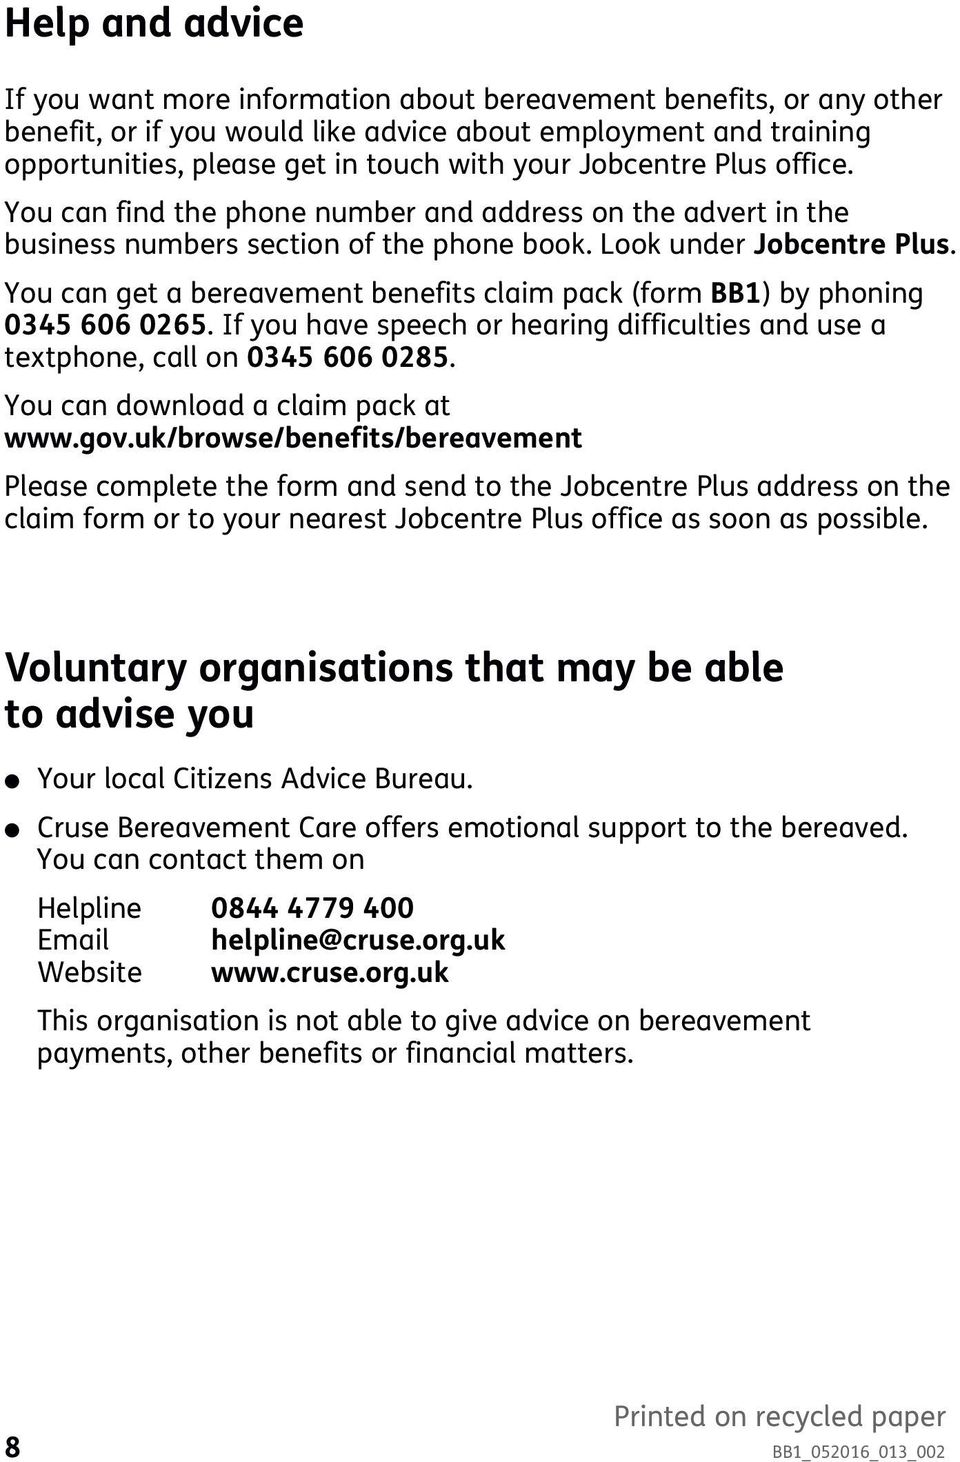 You can get a bereavement benefits caim pack (form BB1) by phoning 0345 606 0265. If you have speech or hearing difficuties and use a textphone, ca on 0345 606 0285.